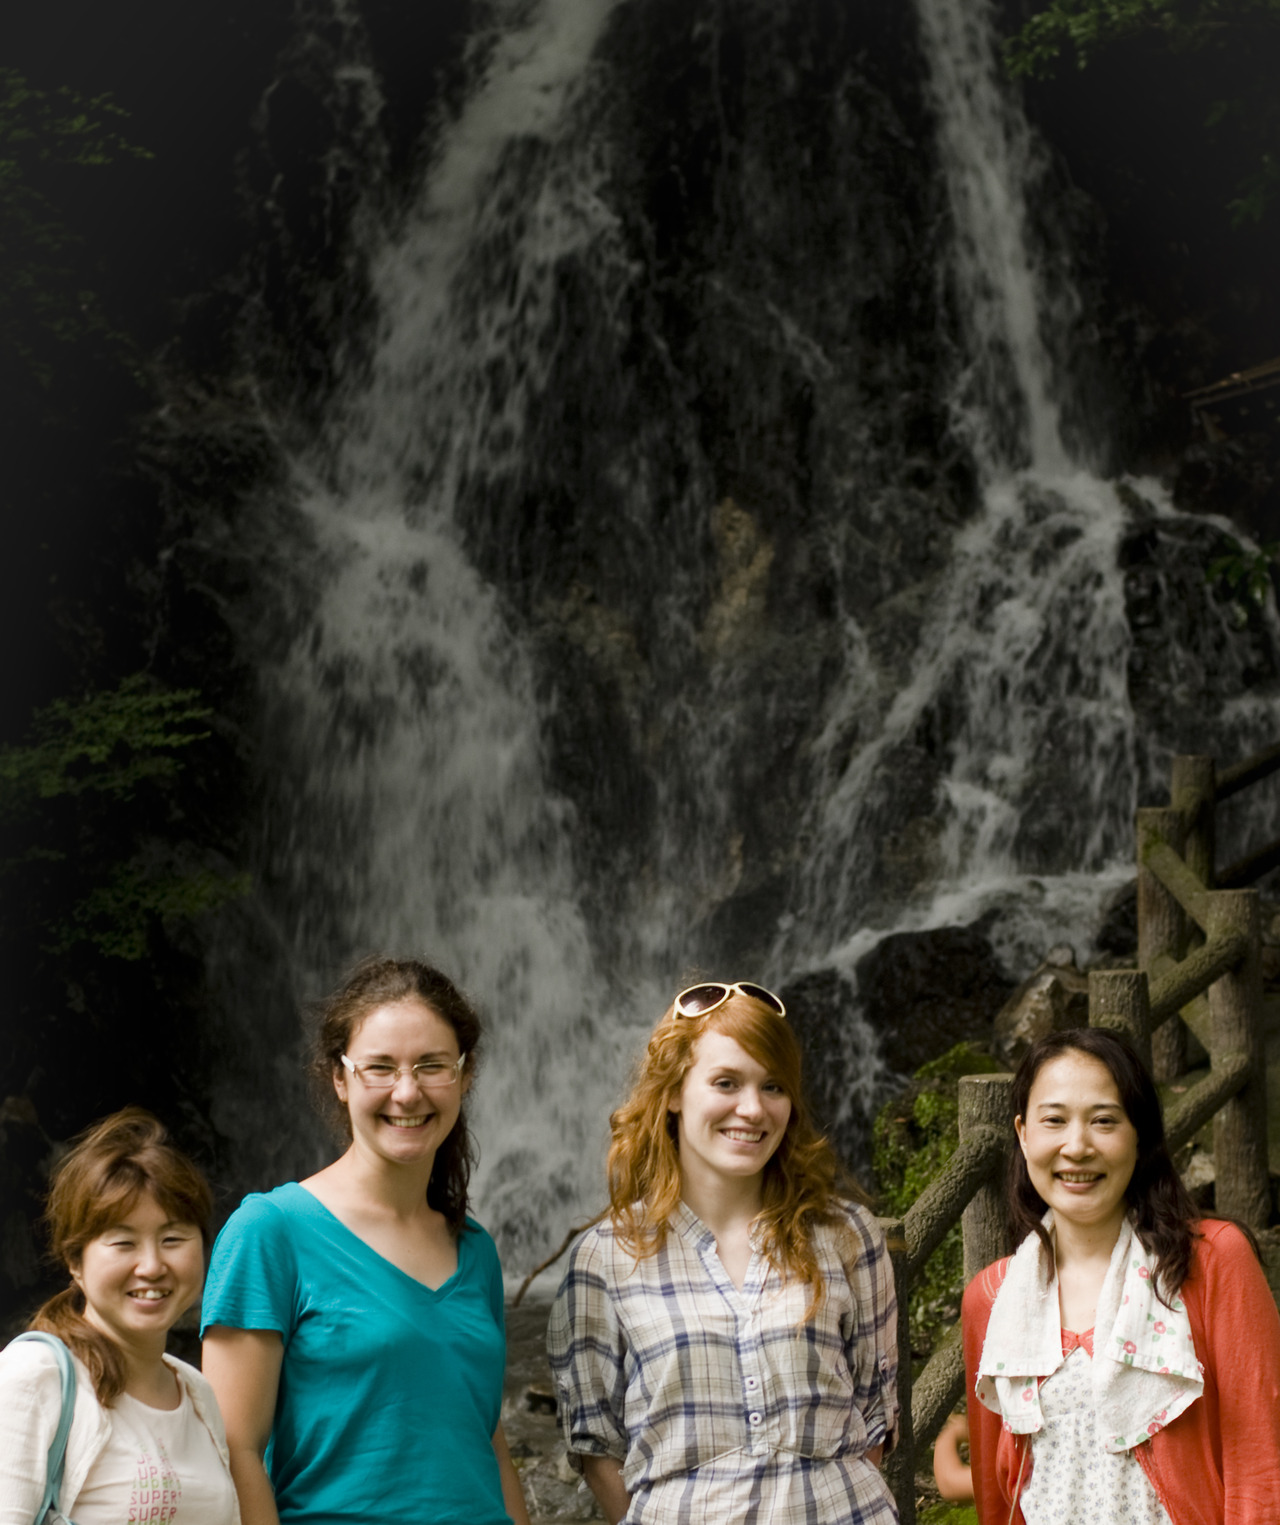 After blueberry picking, we decided to go to a waterfall in Ukiha. It was a great way to cool off and relax. The waterfall was up in the mountains and it was probably at least 10 degrees cooler there. We were all in agreement it was much nicer relaxing there than sitting in our sweaty apartments.